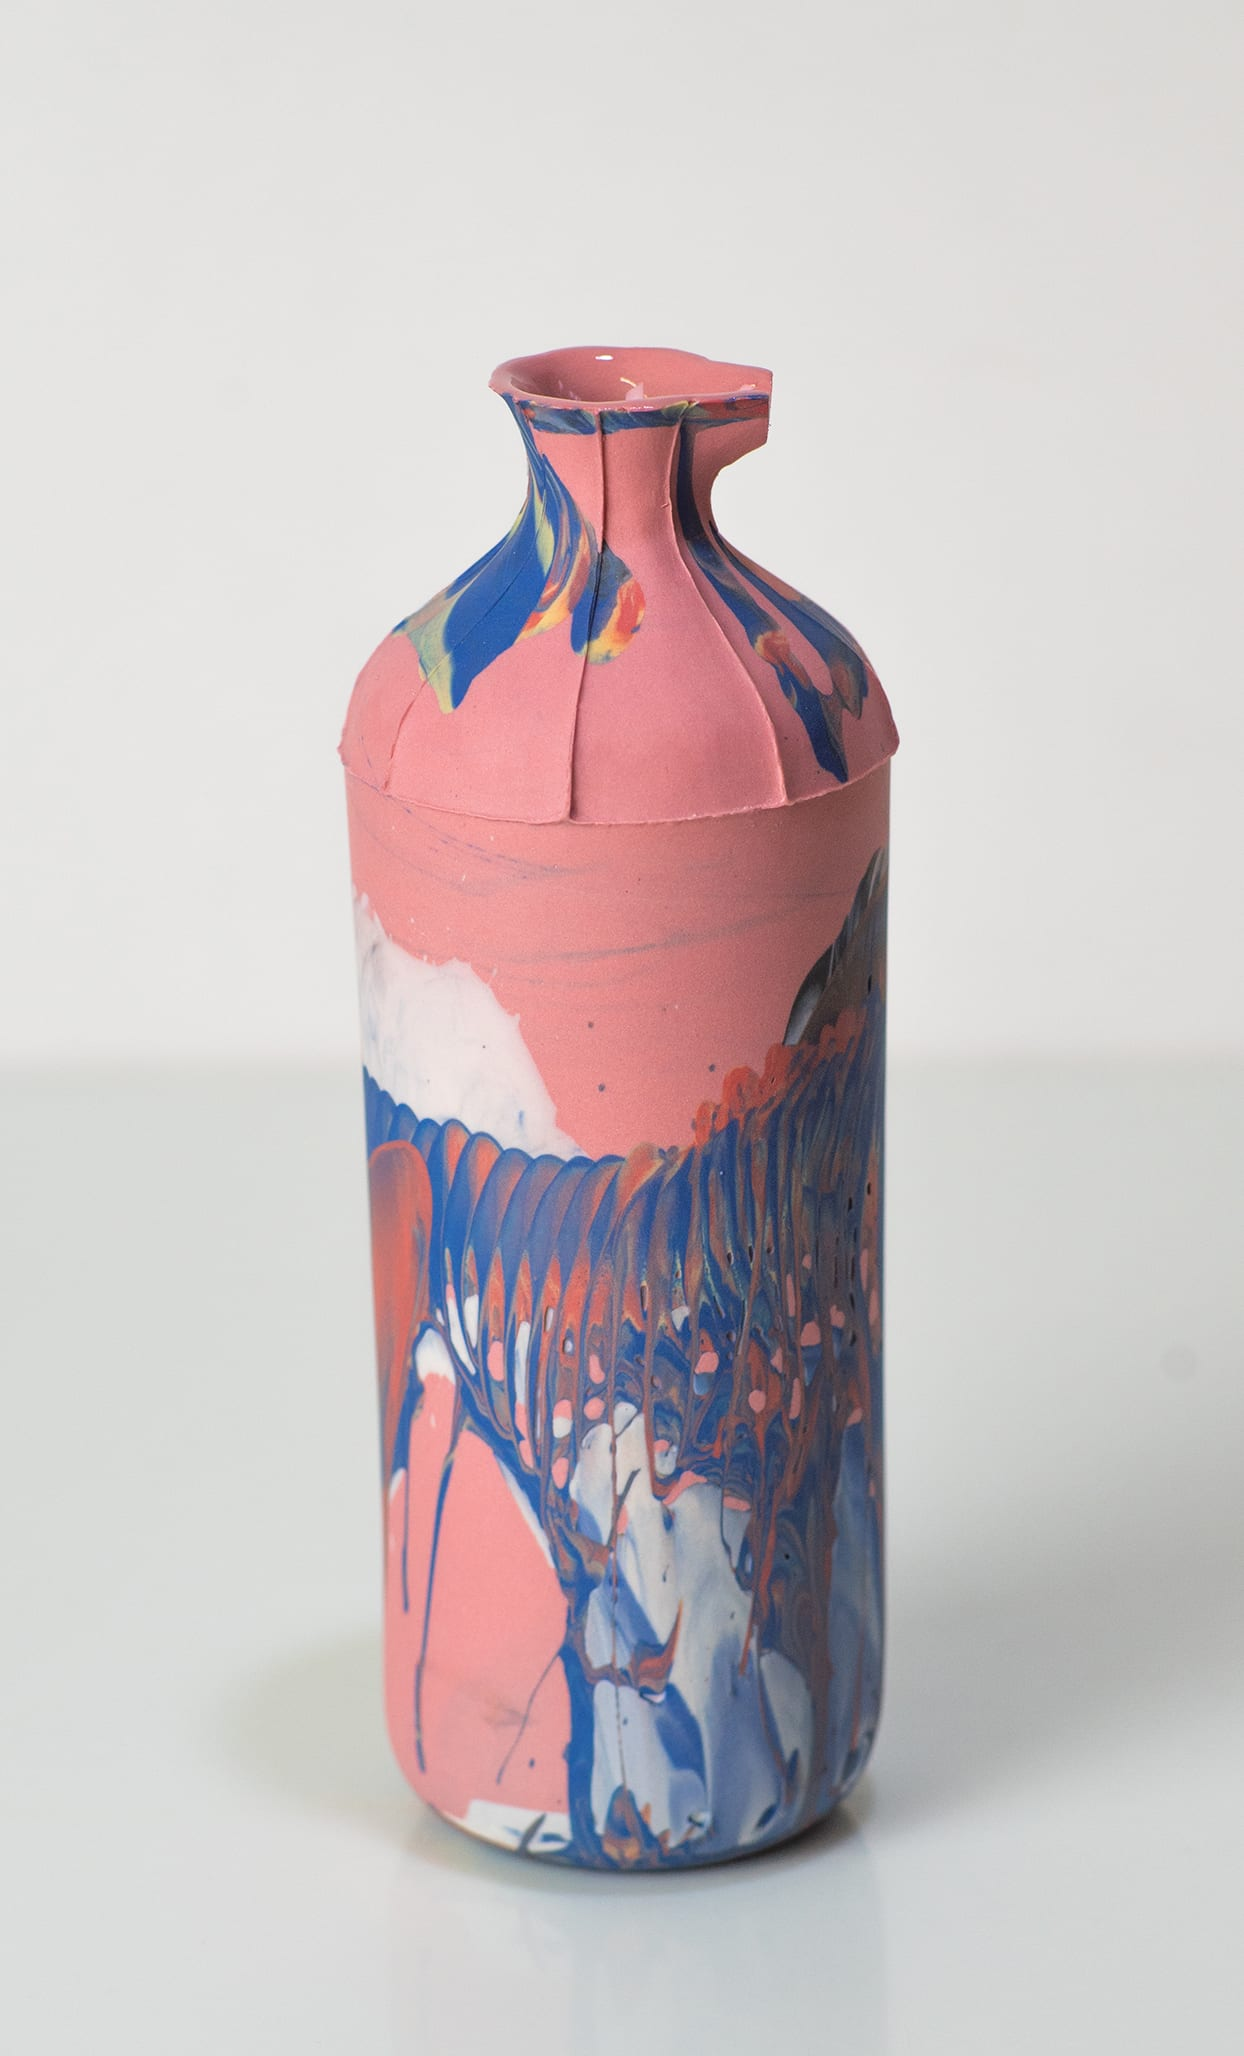 """<span class=""""link fancybox-details-link""""><a href=""""/artists/219-james-pegg/works/6079-james-pegg-tall-bottle-2019/"""">View Detail Page</a></span><div class=""""artist""""><strong>James Pegg</strong></div> <div class=""""title""""><em>Tall Bottle</em>, 2019</div> <div class=""""medium"""">action-cast stained porcelain with glazed interior</div> <div class=""""dimensions"""">h 17 cm</div><div class=""""price"""">£120.00</div><div class=""""copyright_line"""">OwnArt: £ 12 x 10 Months, 0% APR </div>"""